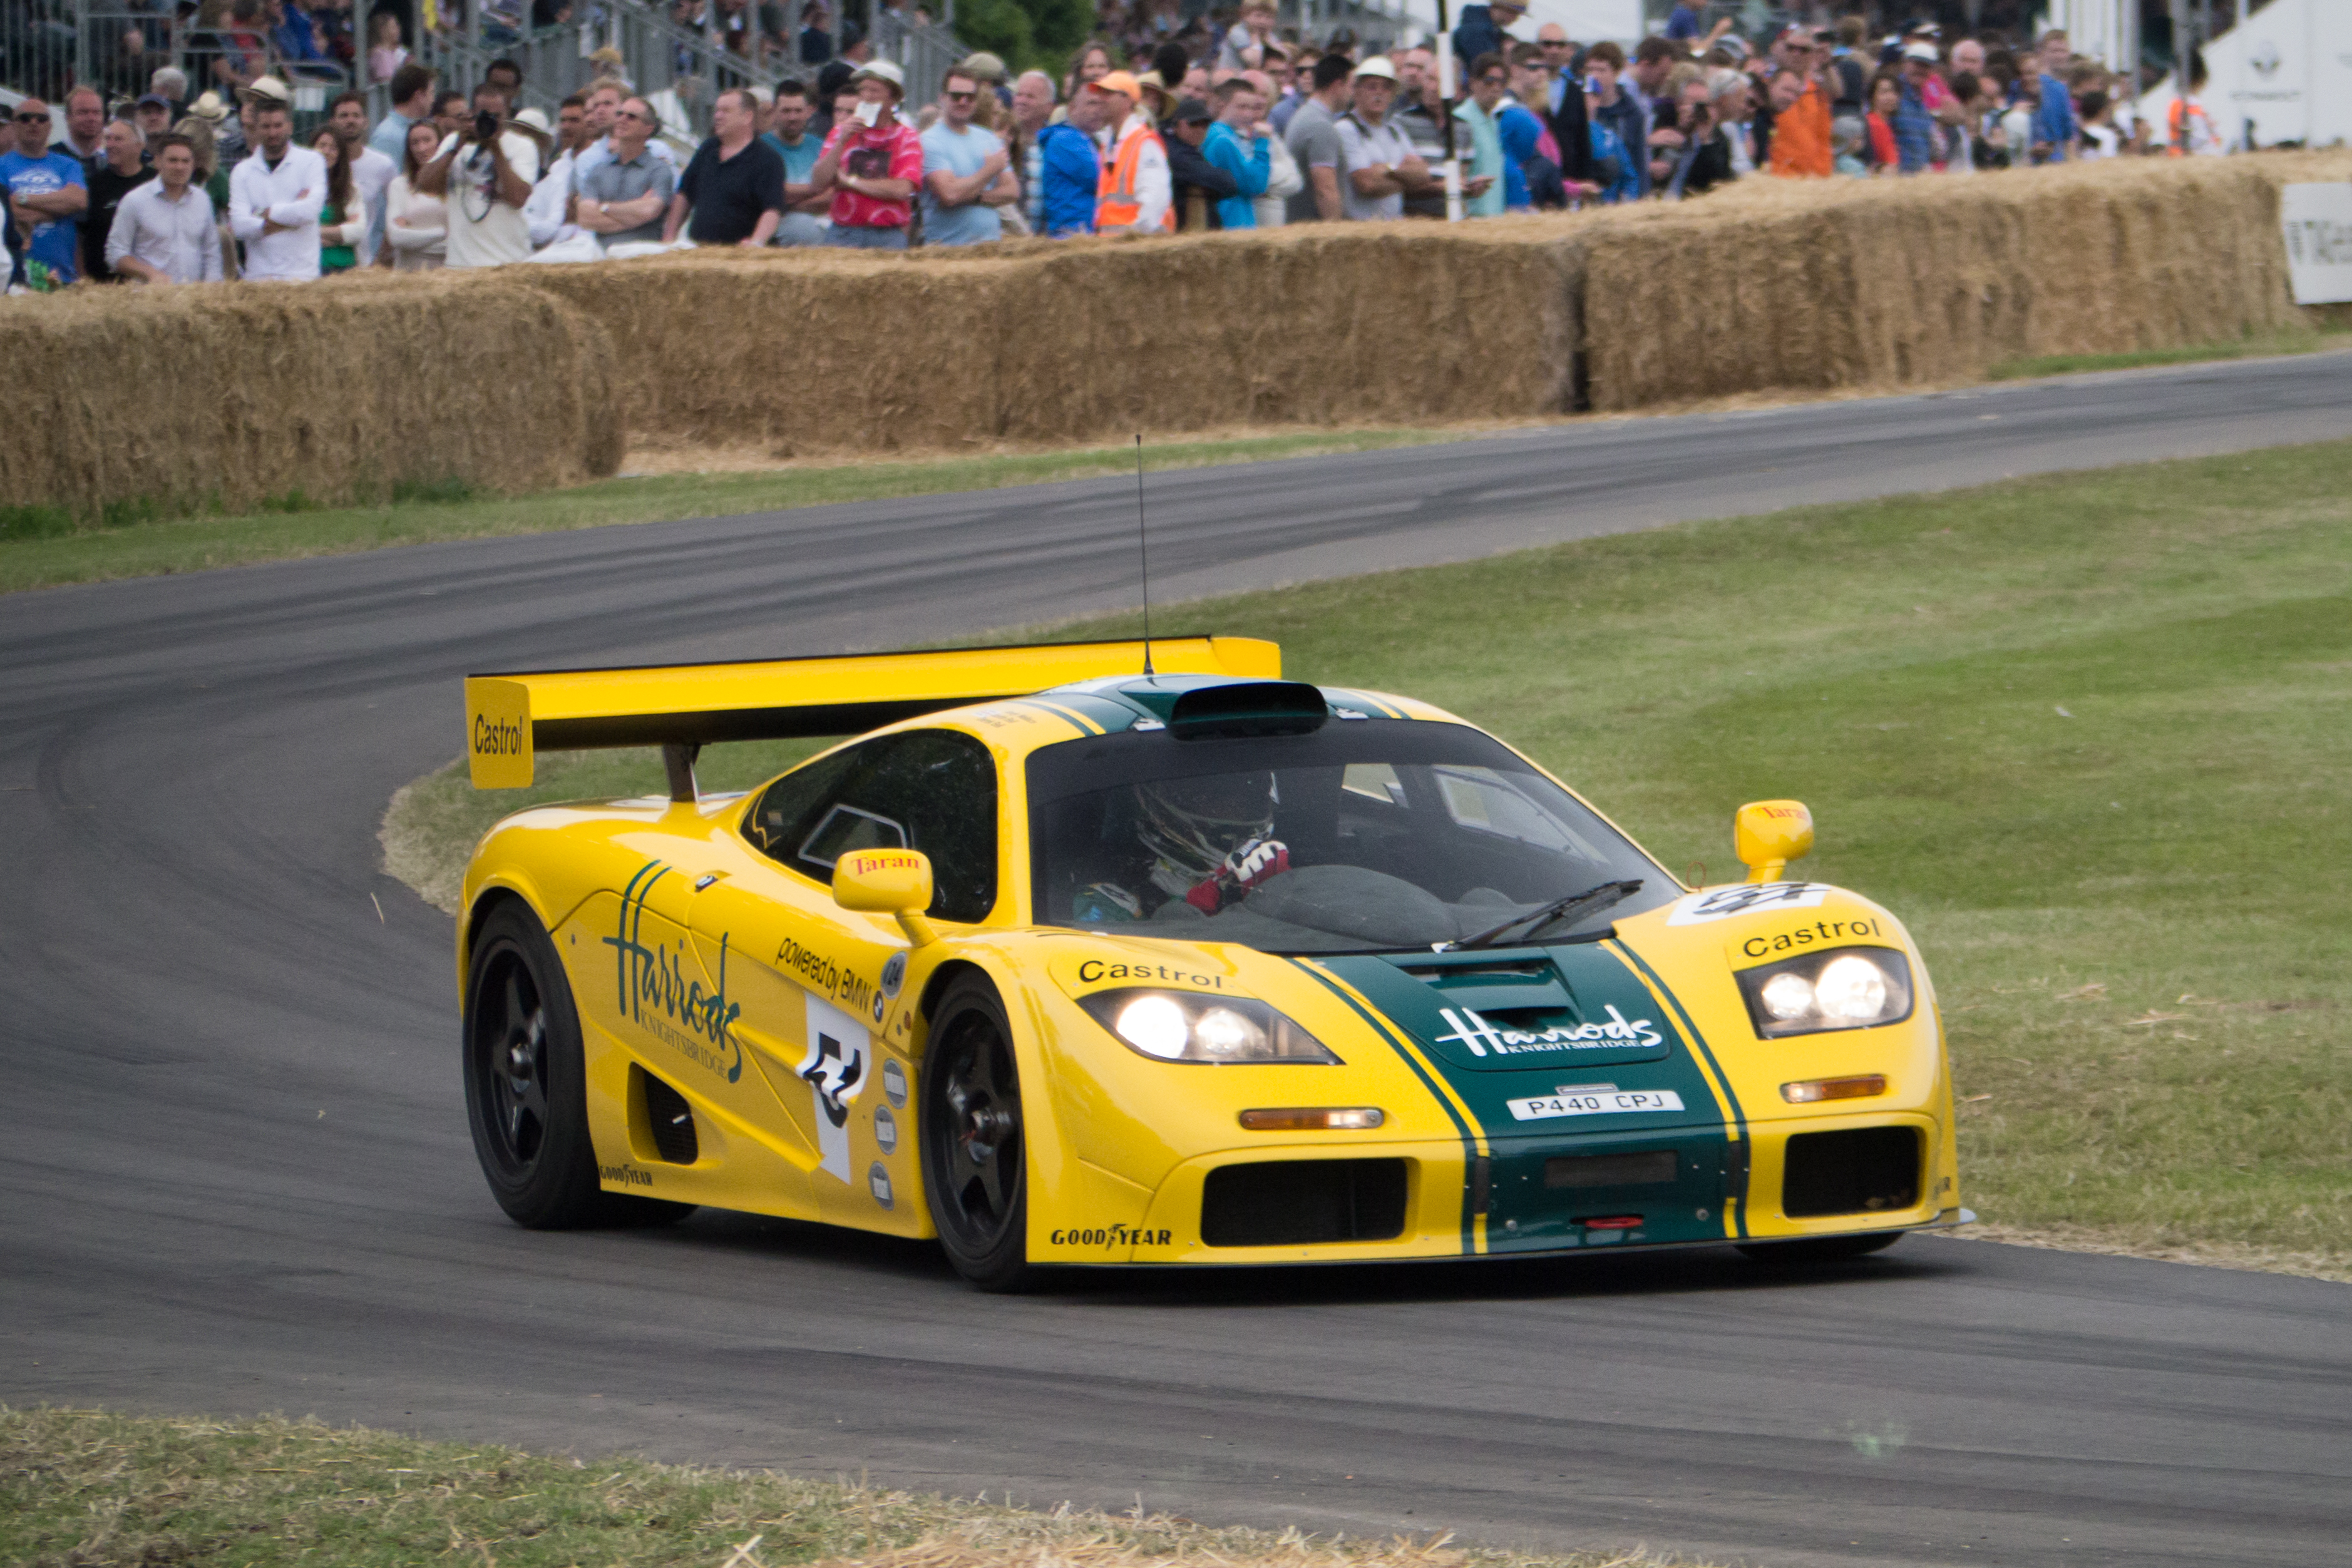 A 1995 Spec F1 GTR At The Goodwood Festival Of Speed Sporting Infamous Harrods Livery